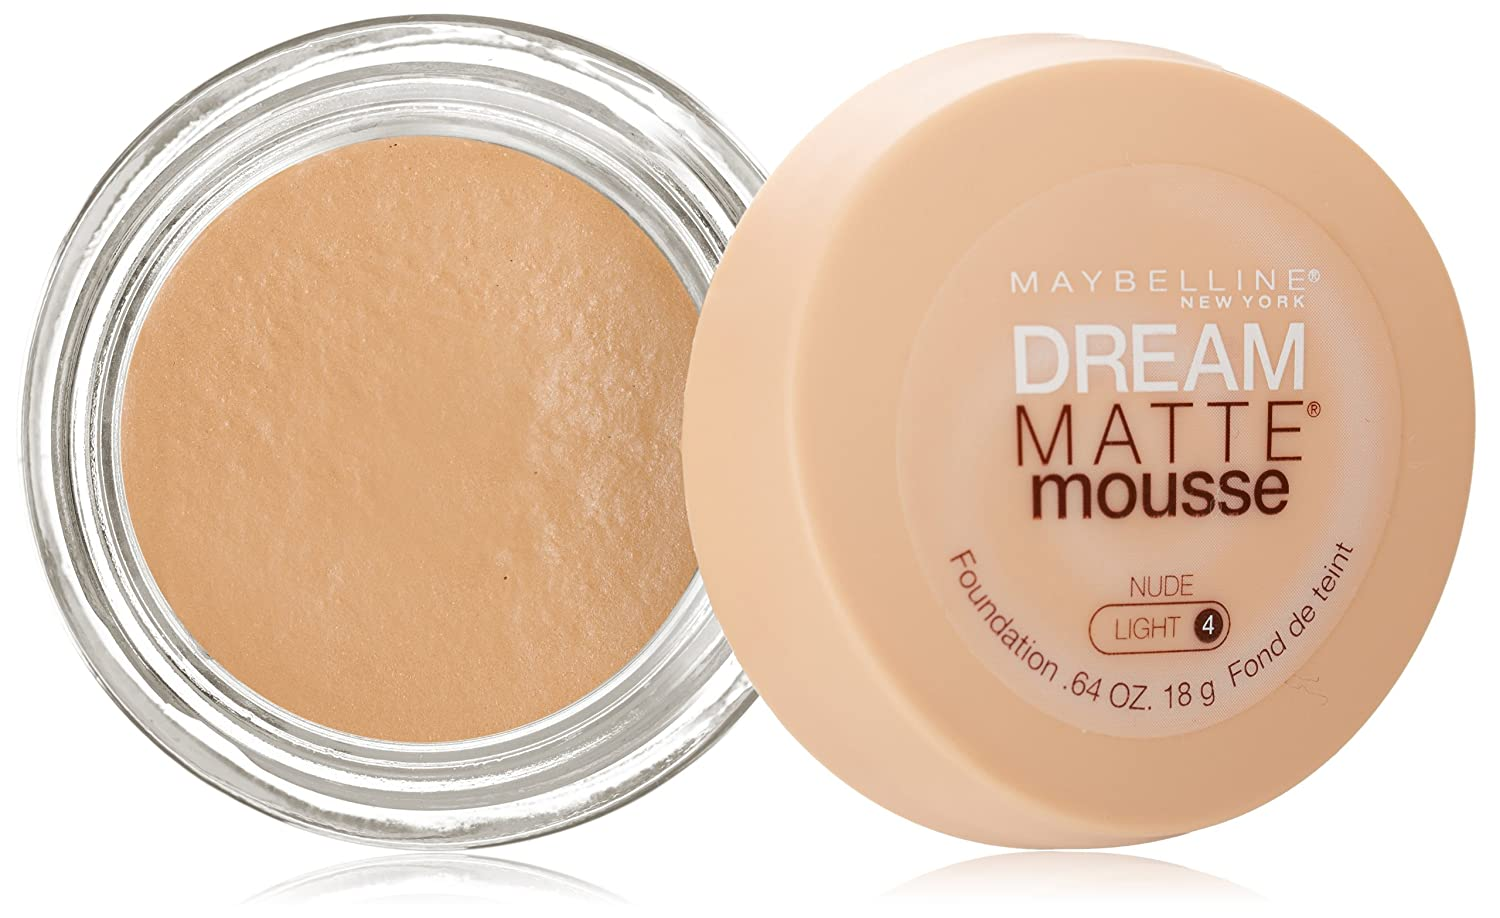 Buy Maybelline Dream Matte Mousse Foundation, Nude 18g Online at ...